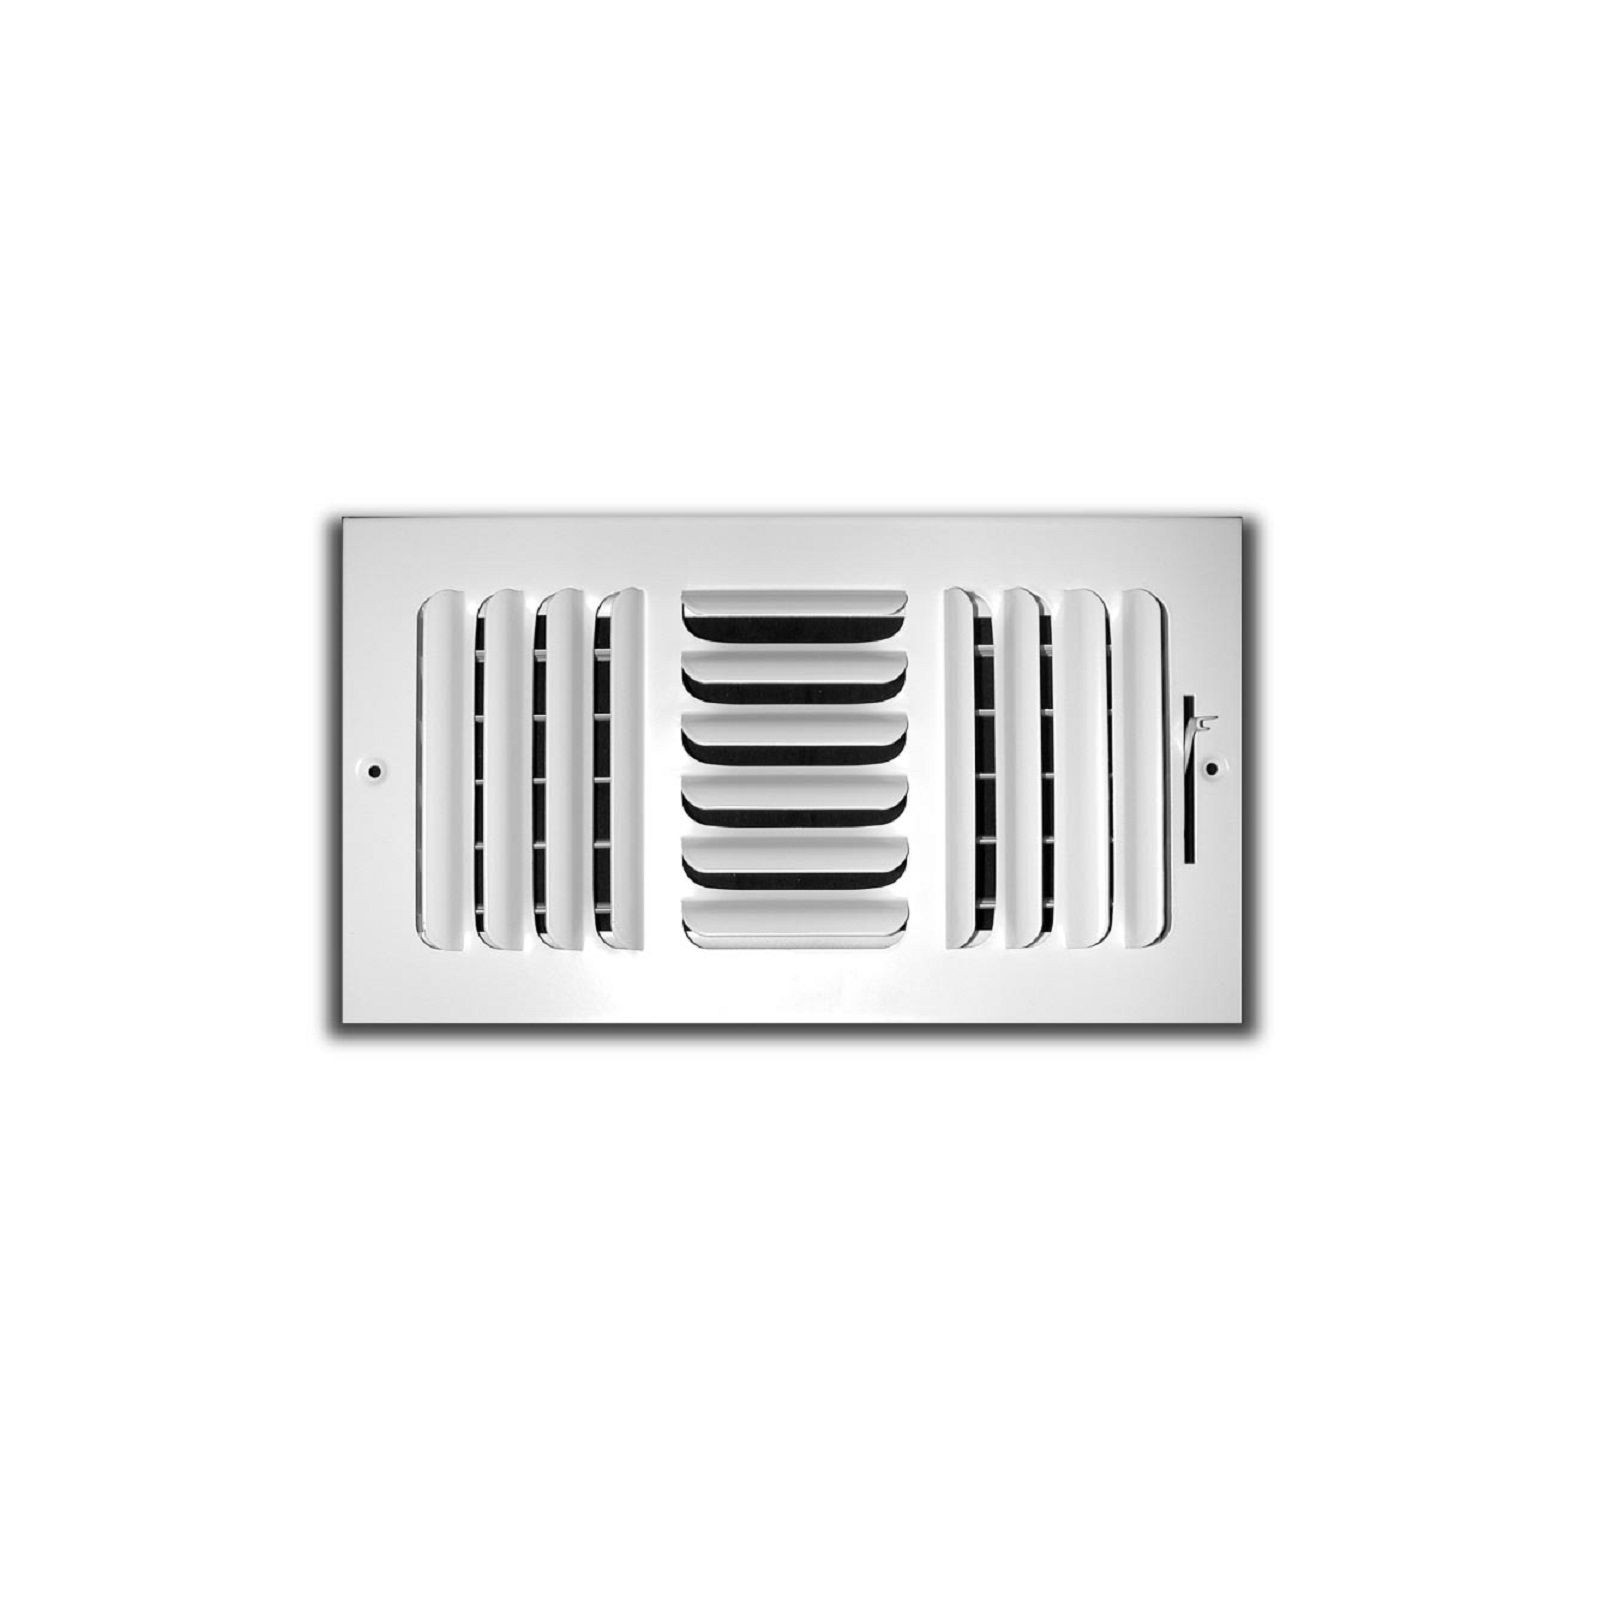 "TRUaire 403M 10X08 - Fixed Curved Blade Wall/Ceiling Register With Multi Shutter Damper, 3-Way, White, 10"" X 08"""